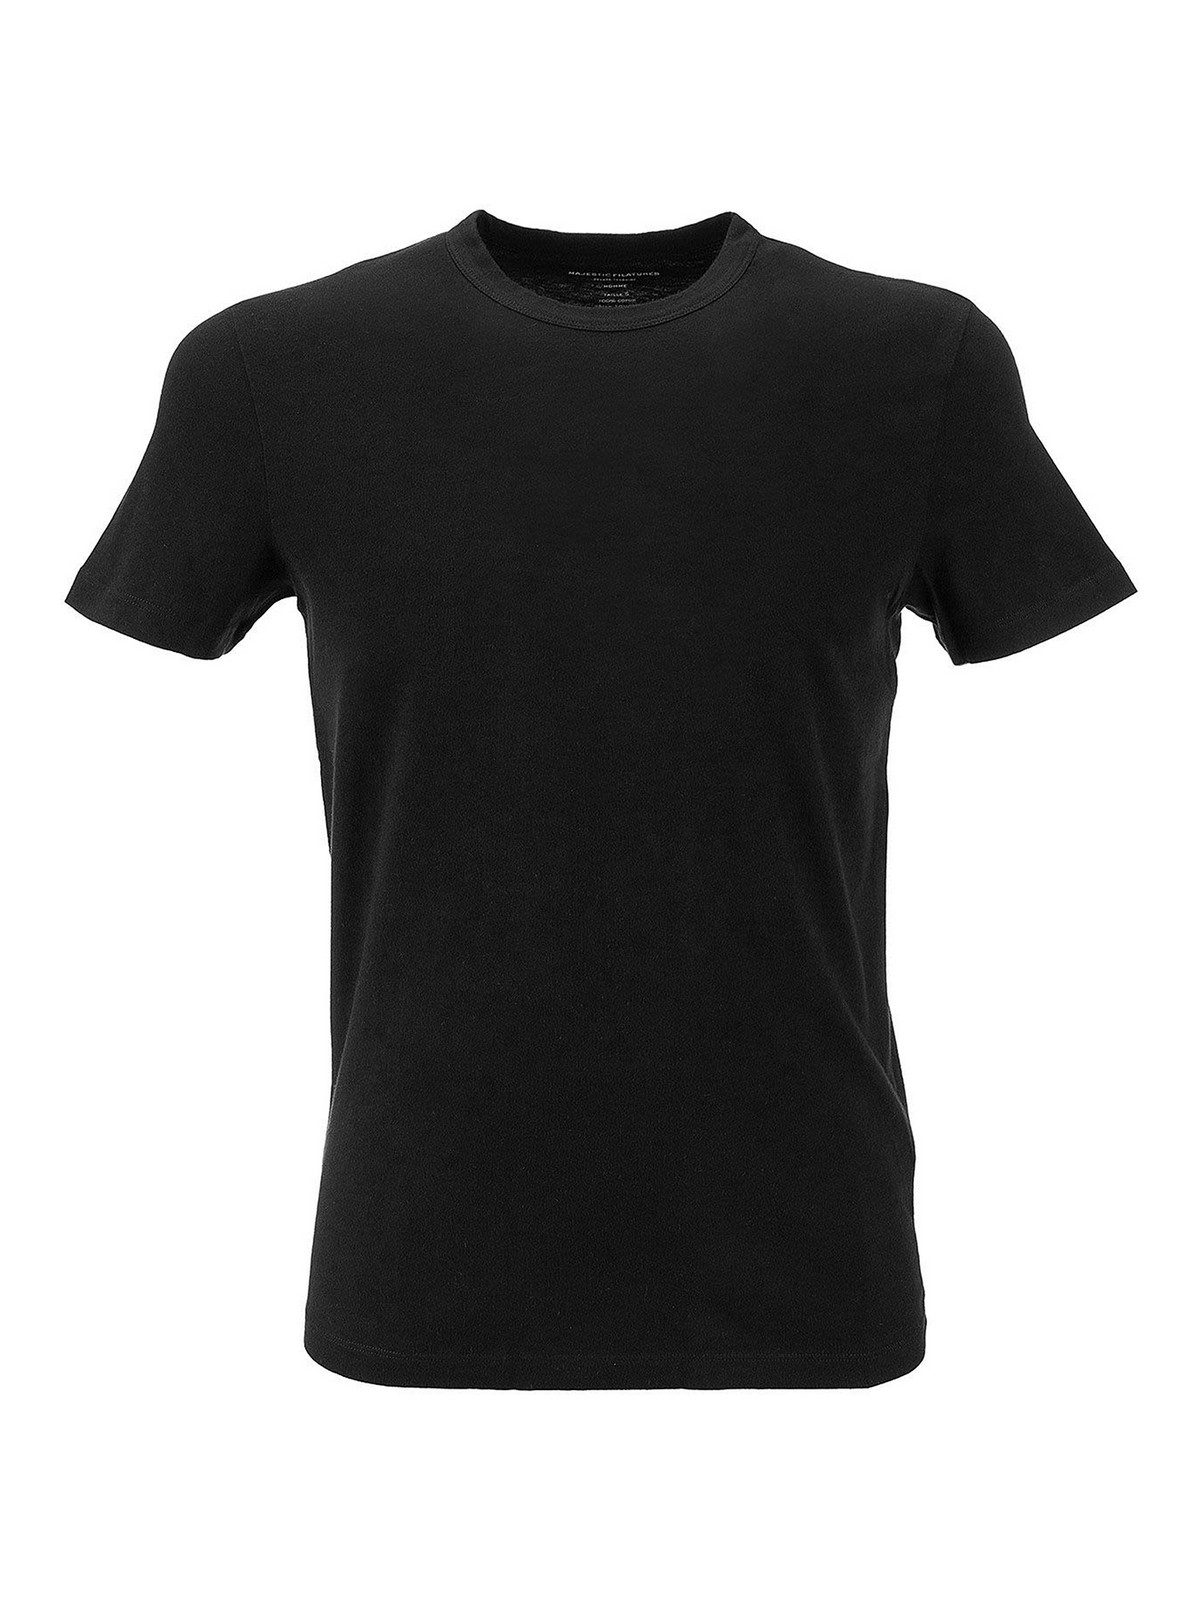 Majestic Cotton T-shirt In Black